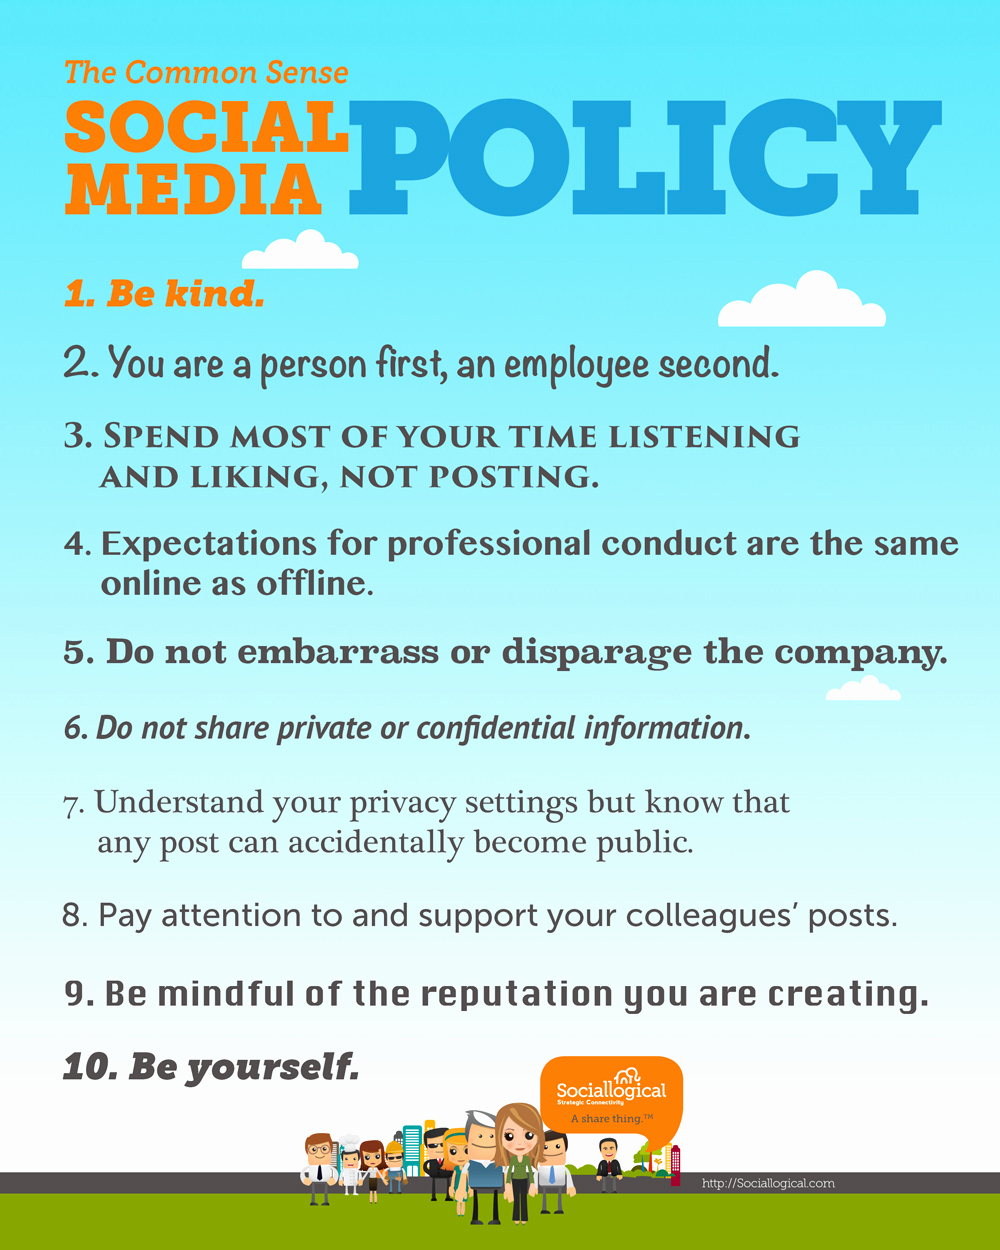 Social Media Policy Templates Elegant the 10 Point social Media Policy Everyone Will Understand